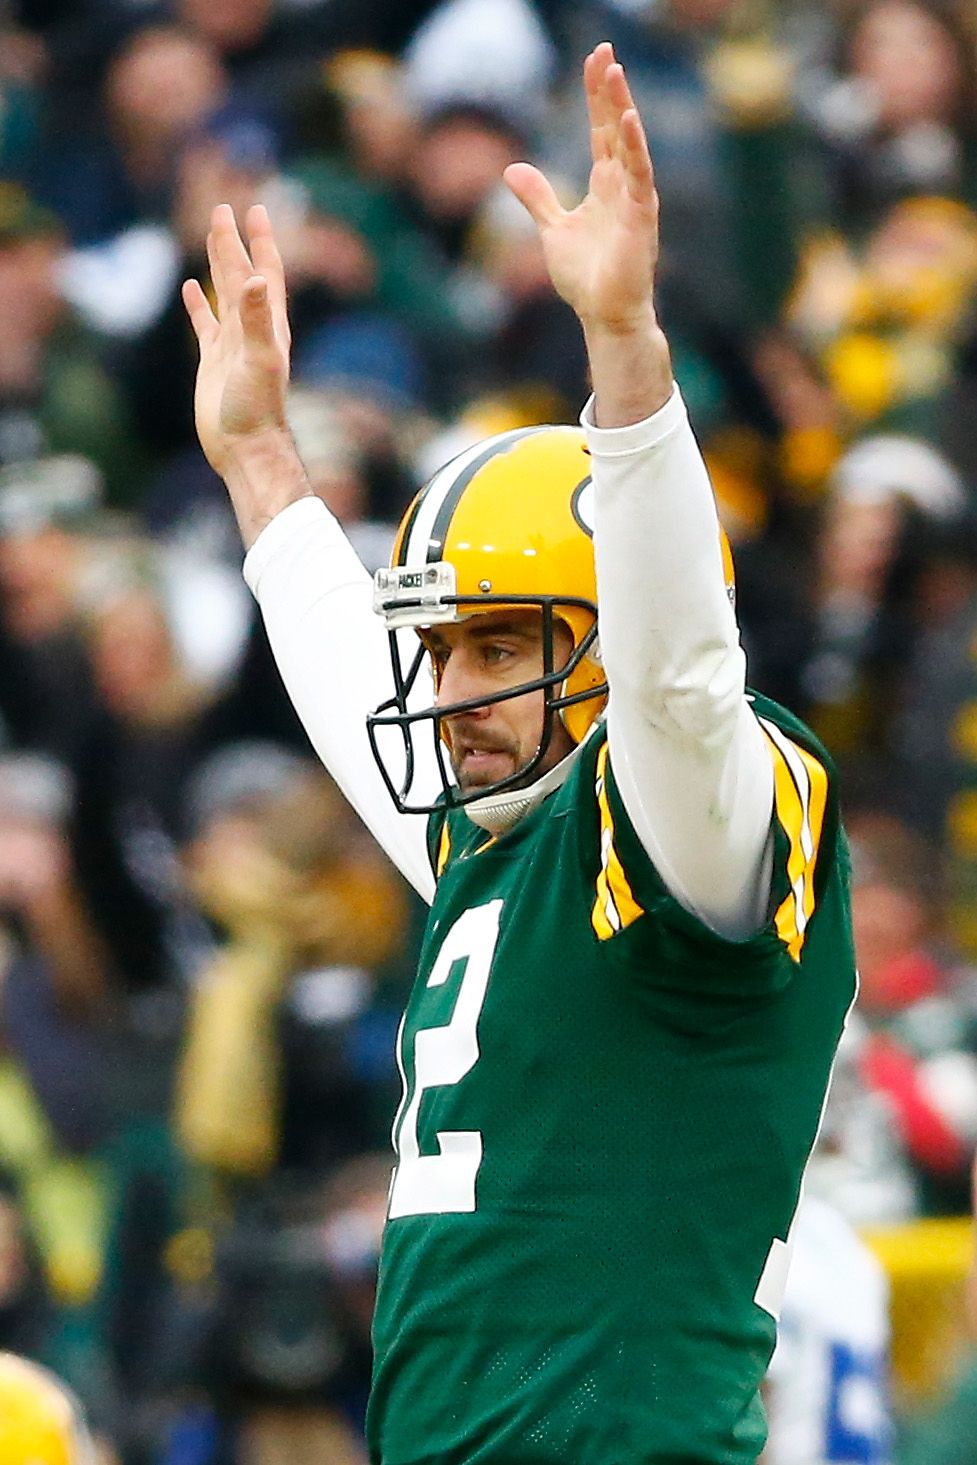 Aaron Rodgers of the Green Bay Packers reacts after completing a pass during the 2015 NFC Divisional Playoff game on Jan. 11, 2015 in Green Bay, Wisconsin.